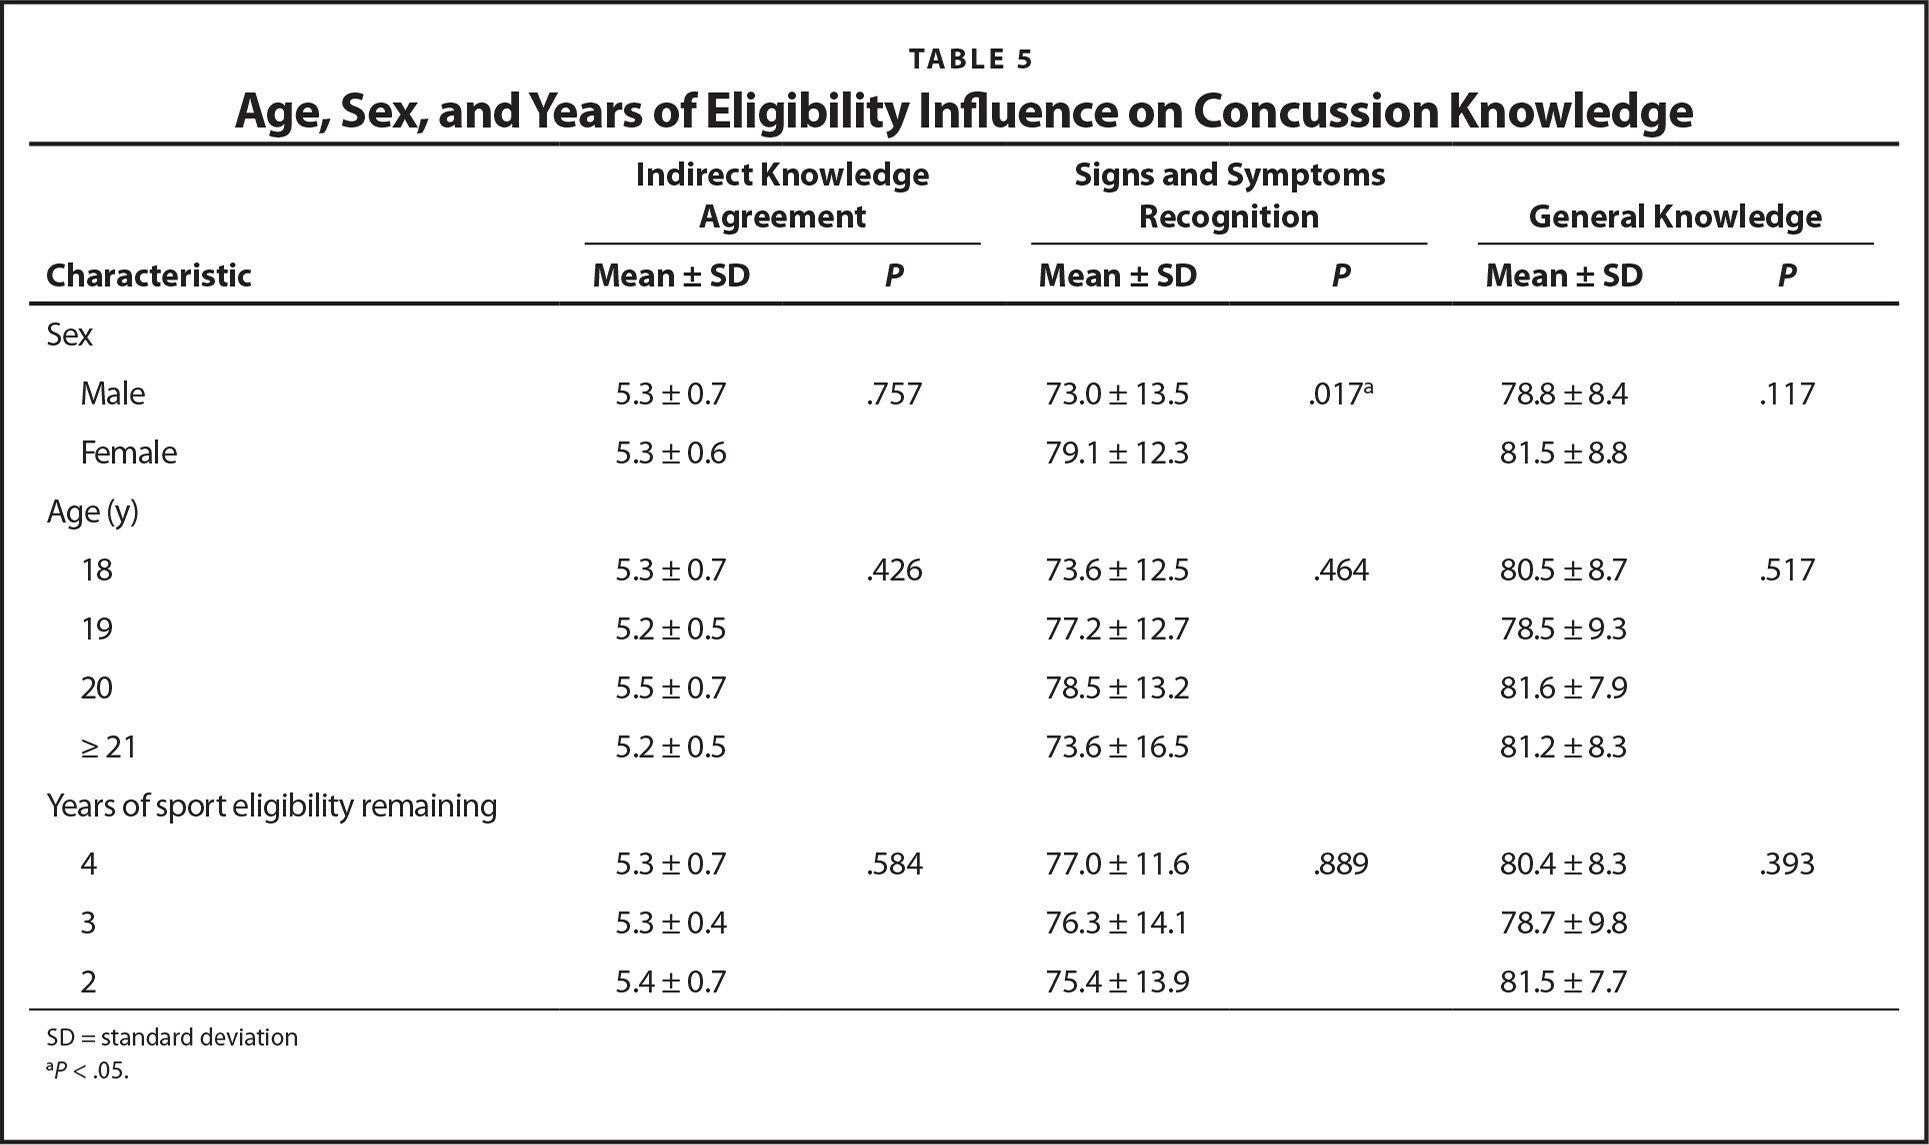 Age, Sex, and Years of Eligibility Influence on Concussion Knowledge